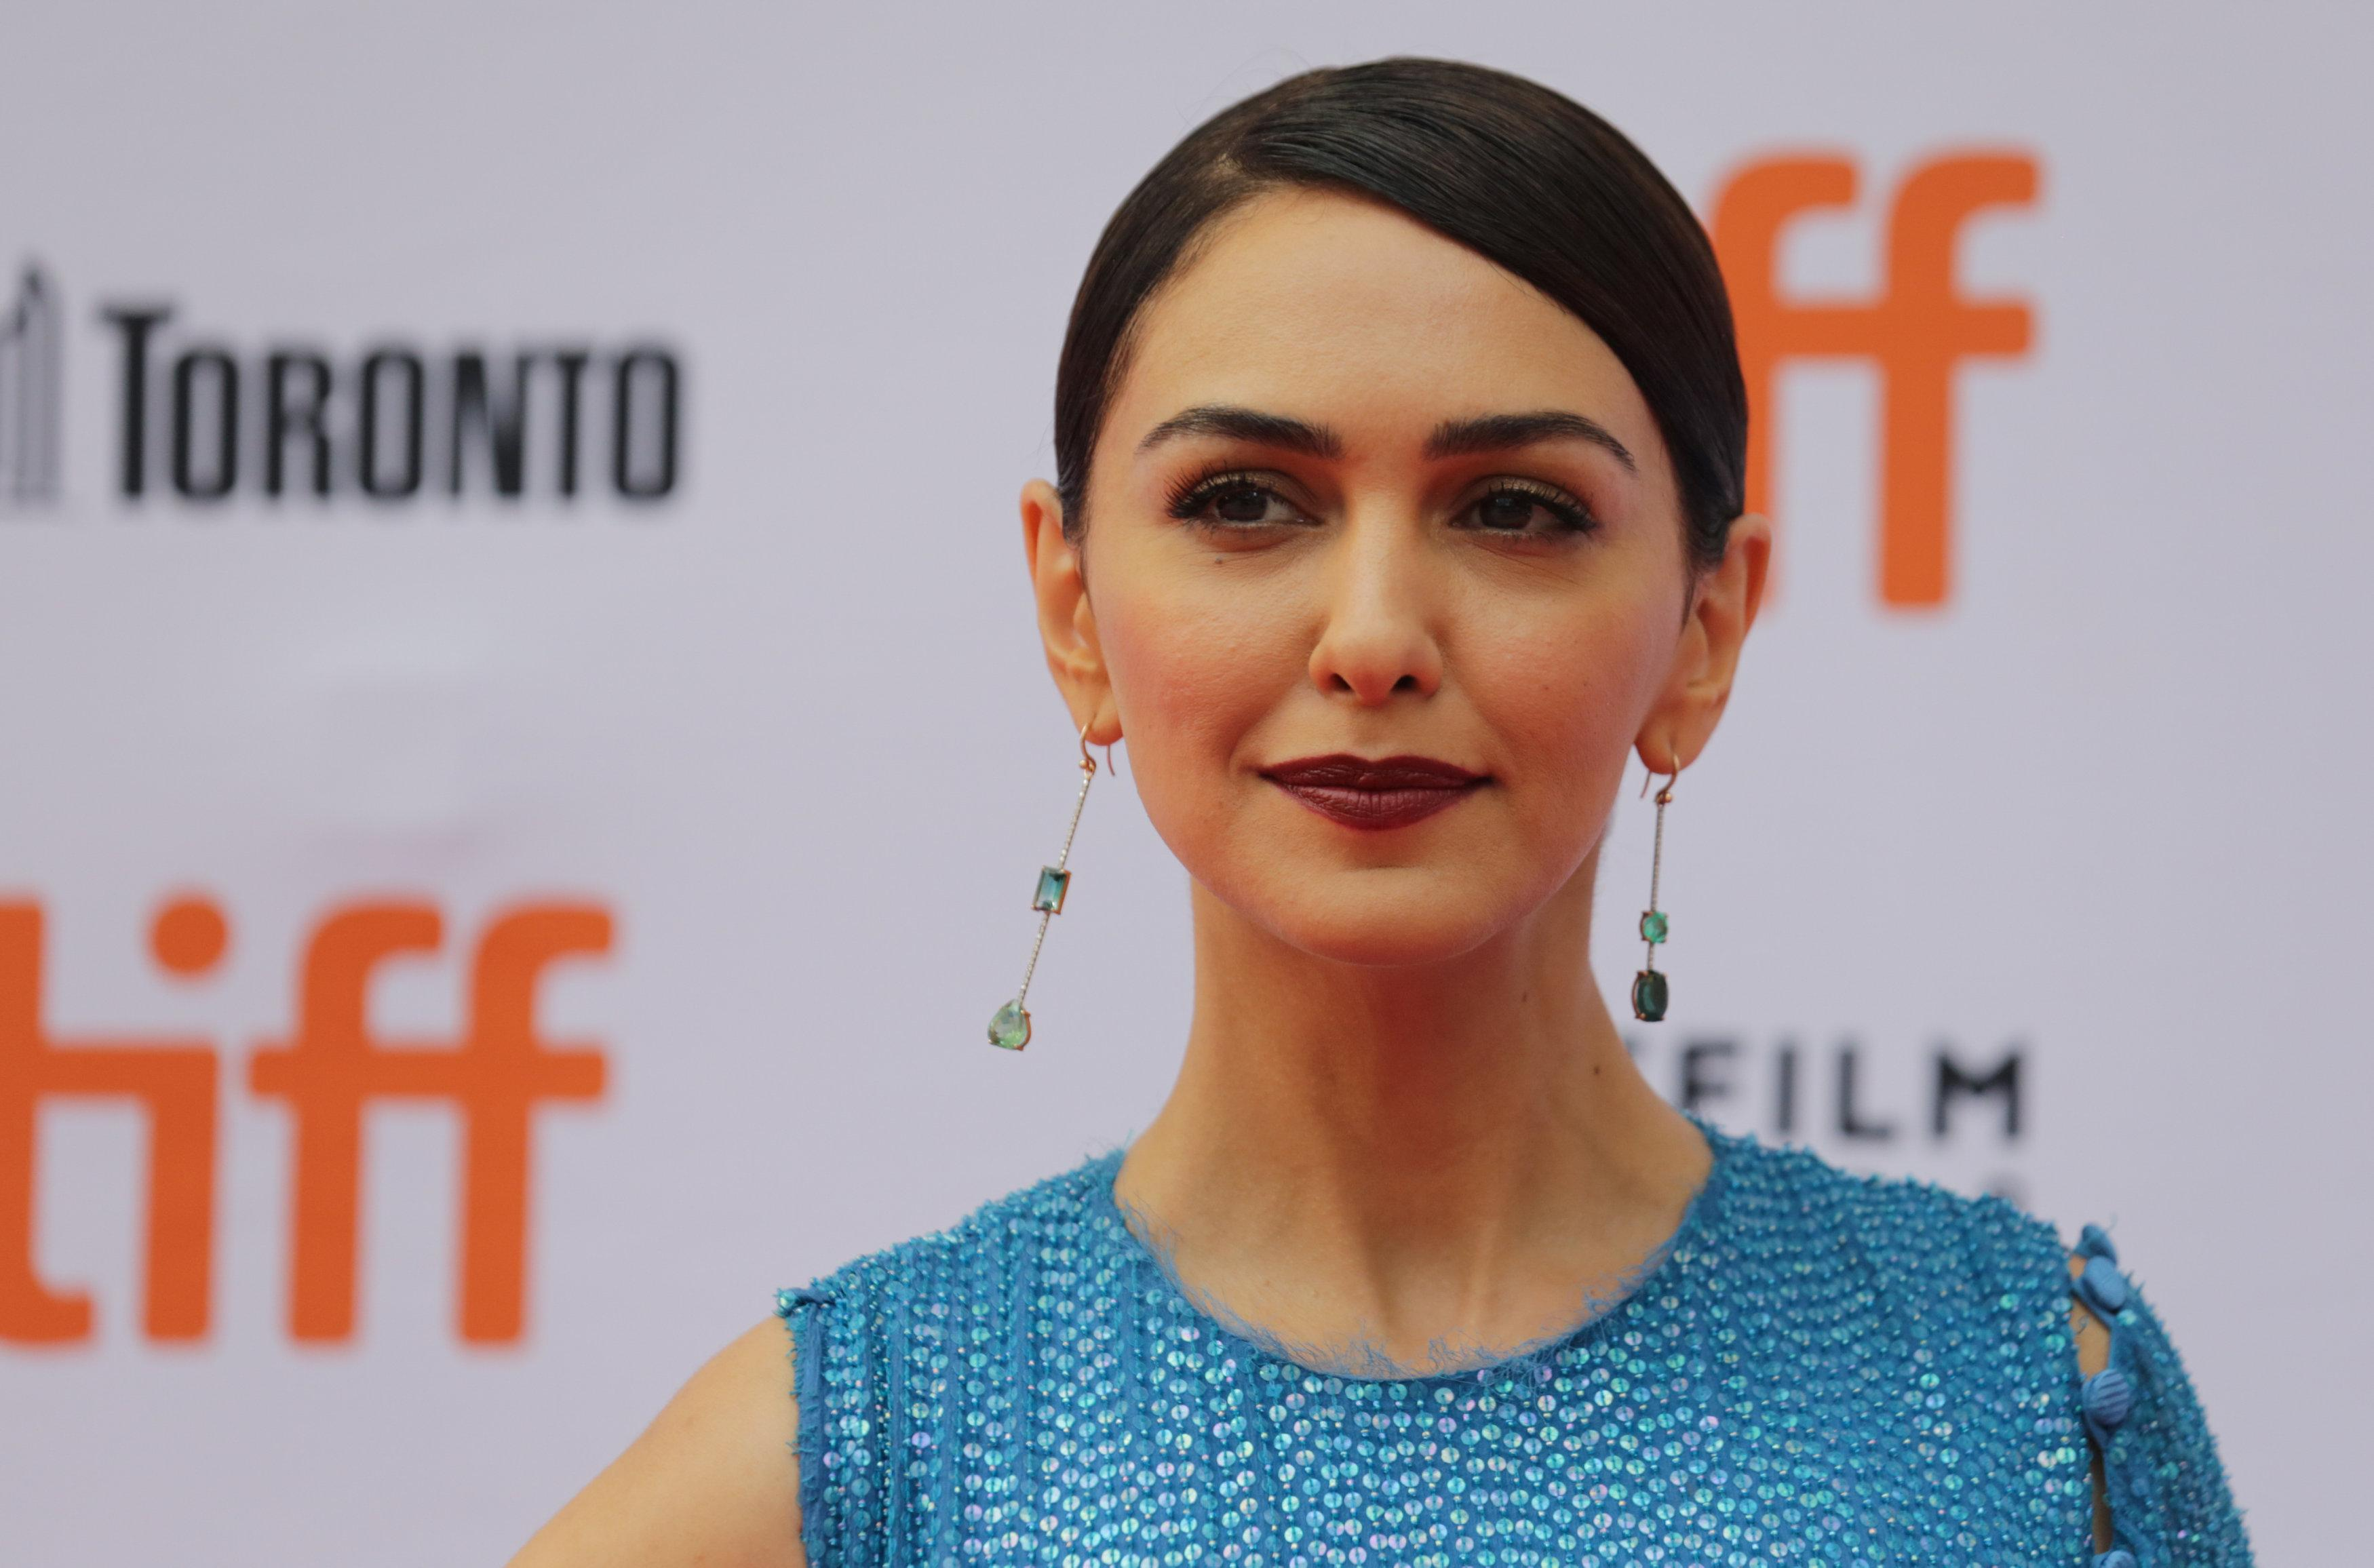 Actor Nazanin Boniadi arrives for the world premiere of Hotel Mumbai at the Toronto International Film Festival (TIFF) in Toronto, Canada, September 7, 2018. Chris Helgren